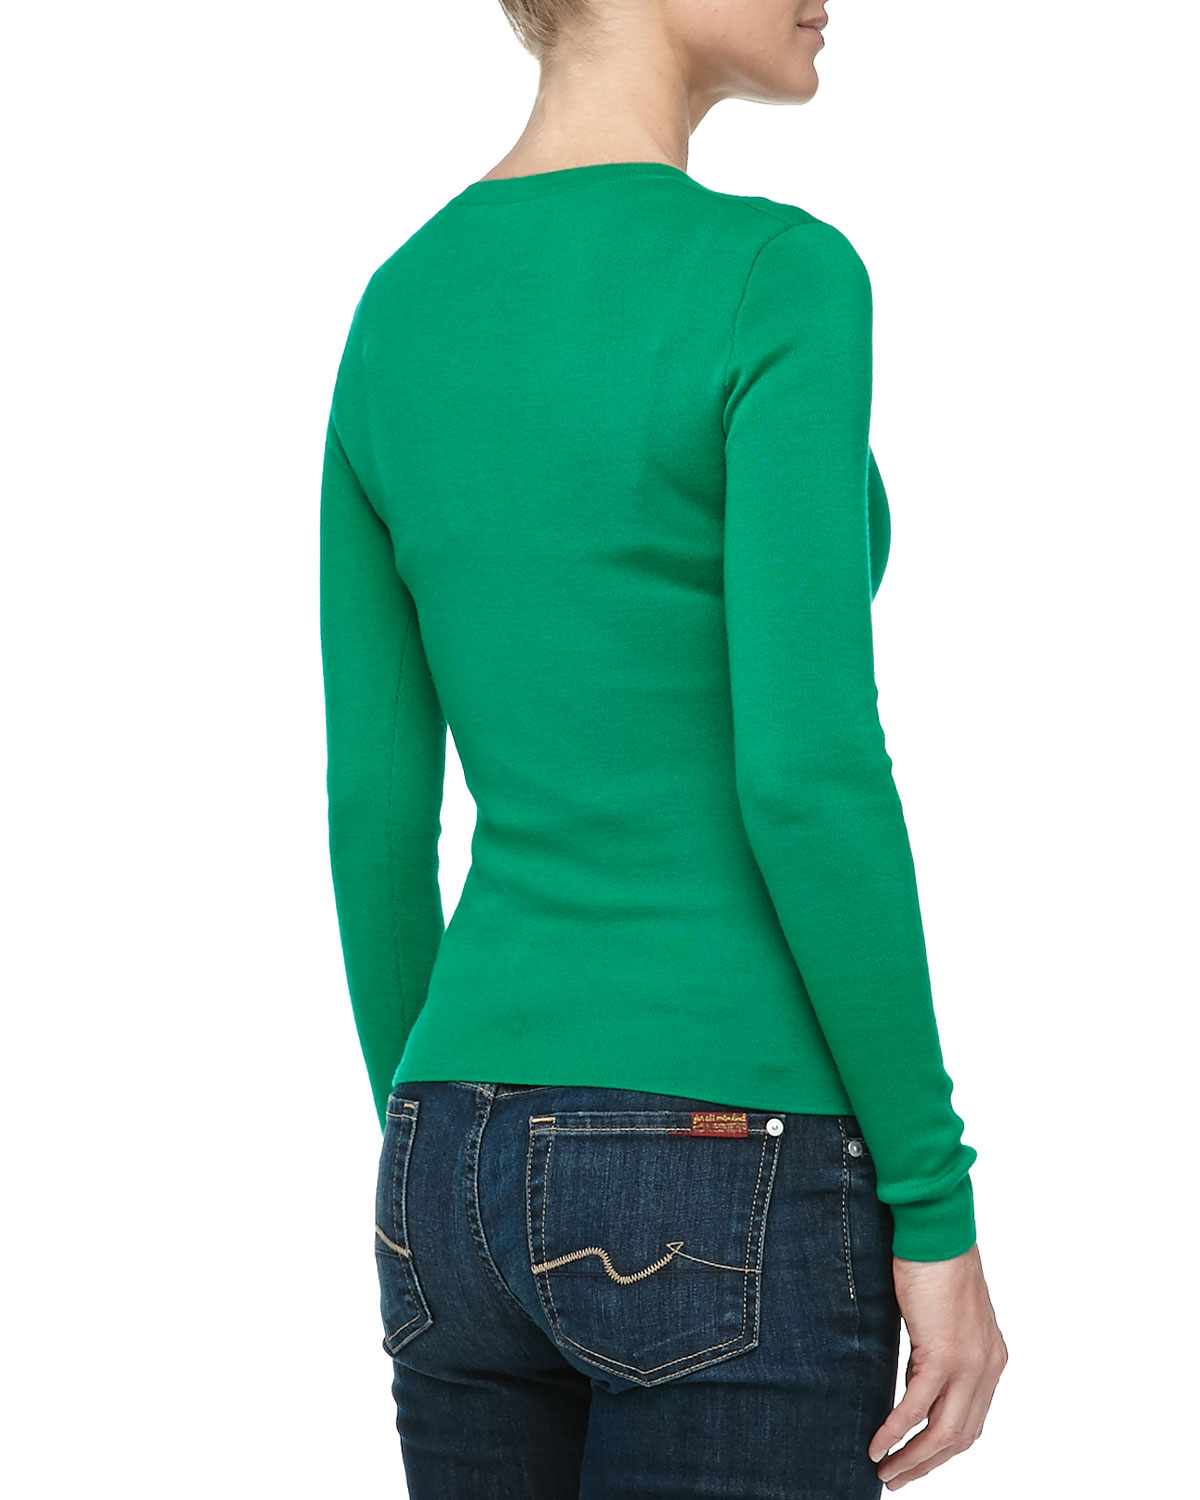 Michael kors Vneck Super Cashmere Sweater in Green | Lyst